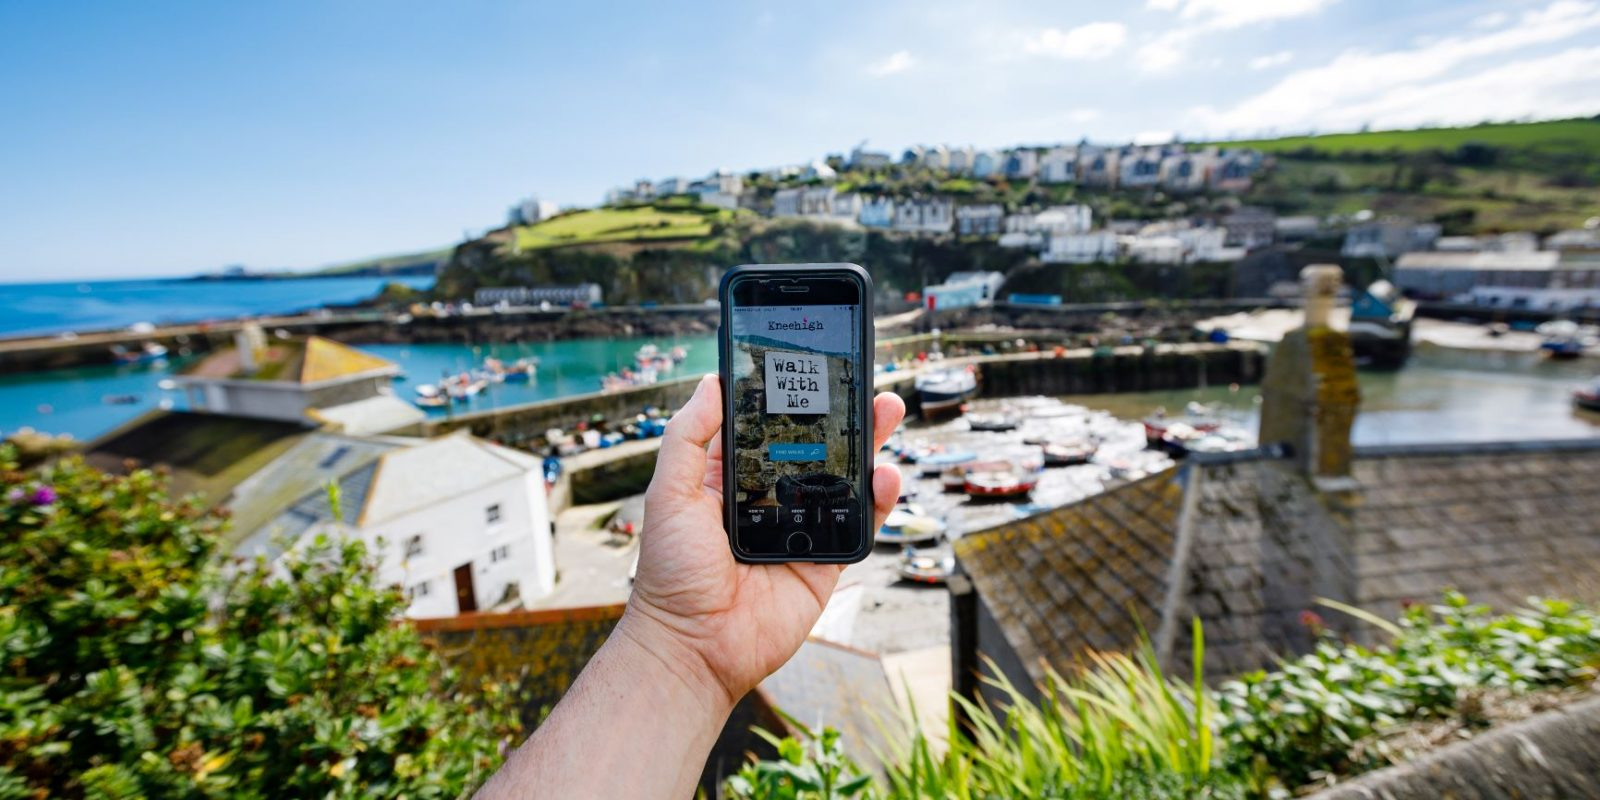 A person holds a phone up against the background of a seaside town's harbour, with blue ocean, houses on the cliffs and an array of fishing boats in the blurred background. In the foreground, the image on the phone is the Kneehigh Theatre Walk with Me app homepage.